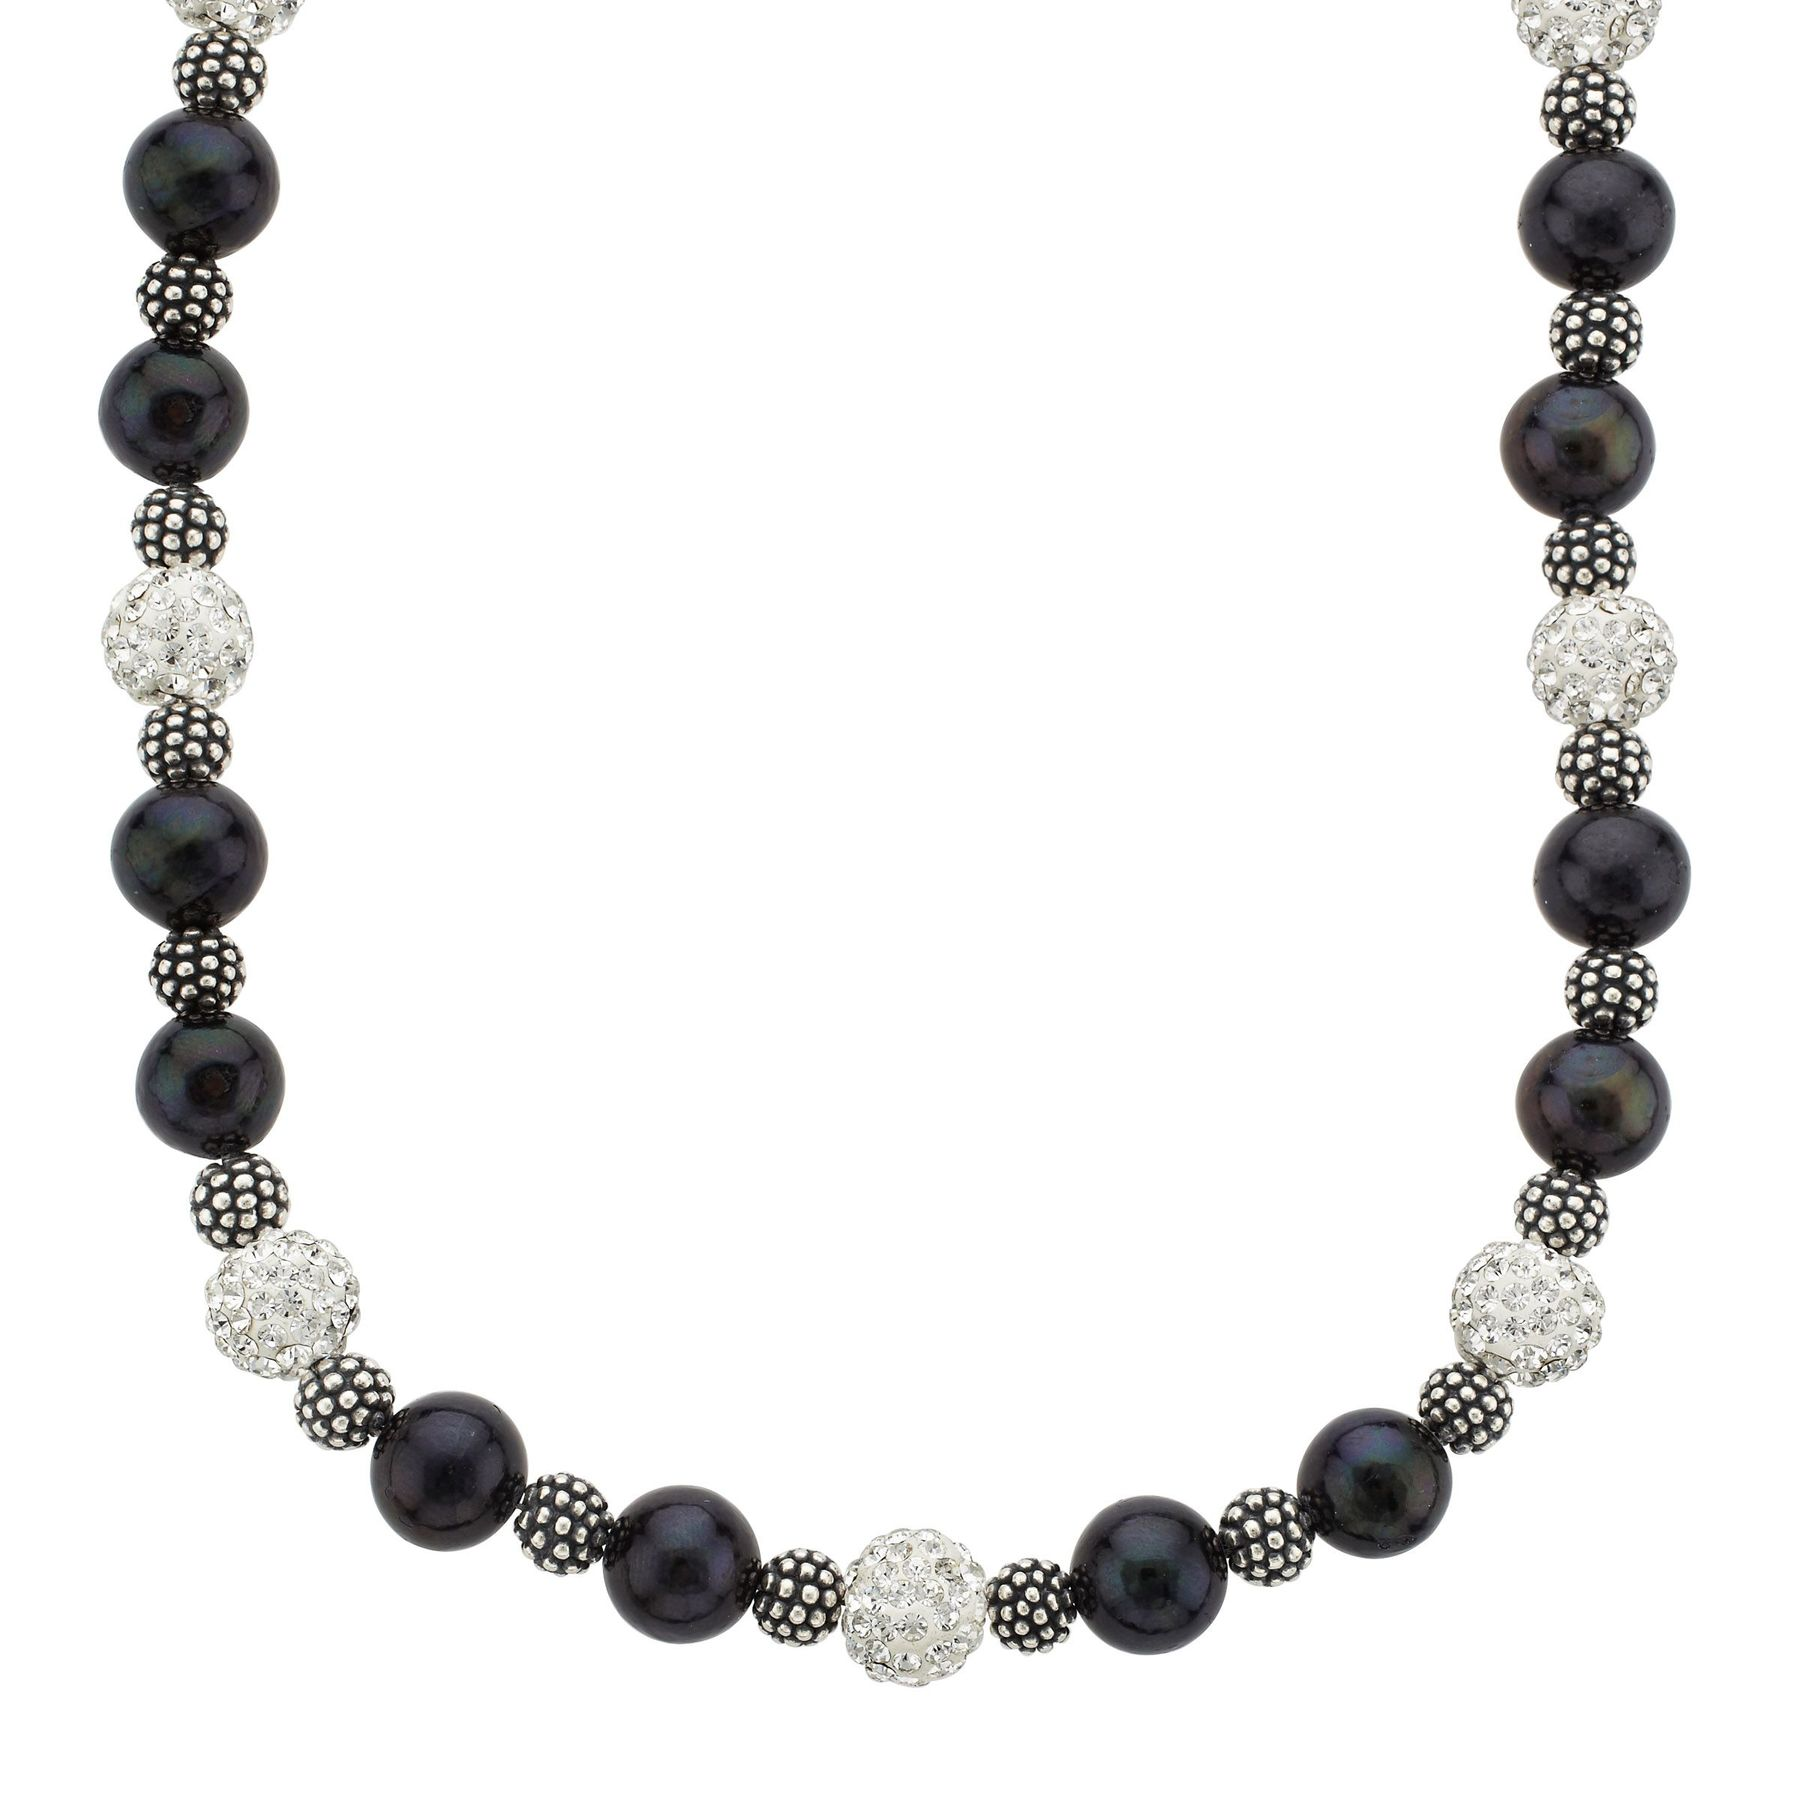 buy online handmade hematite pearl the bracelet shop item on black bracelets pearls and livemaster